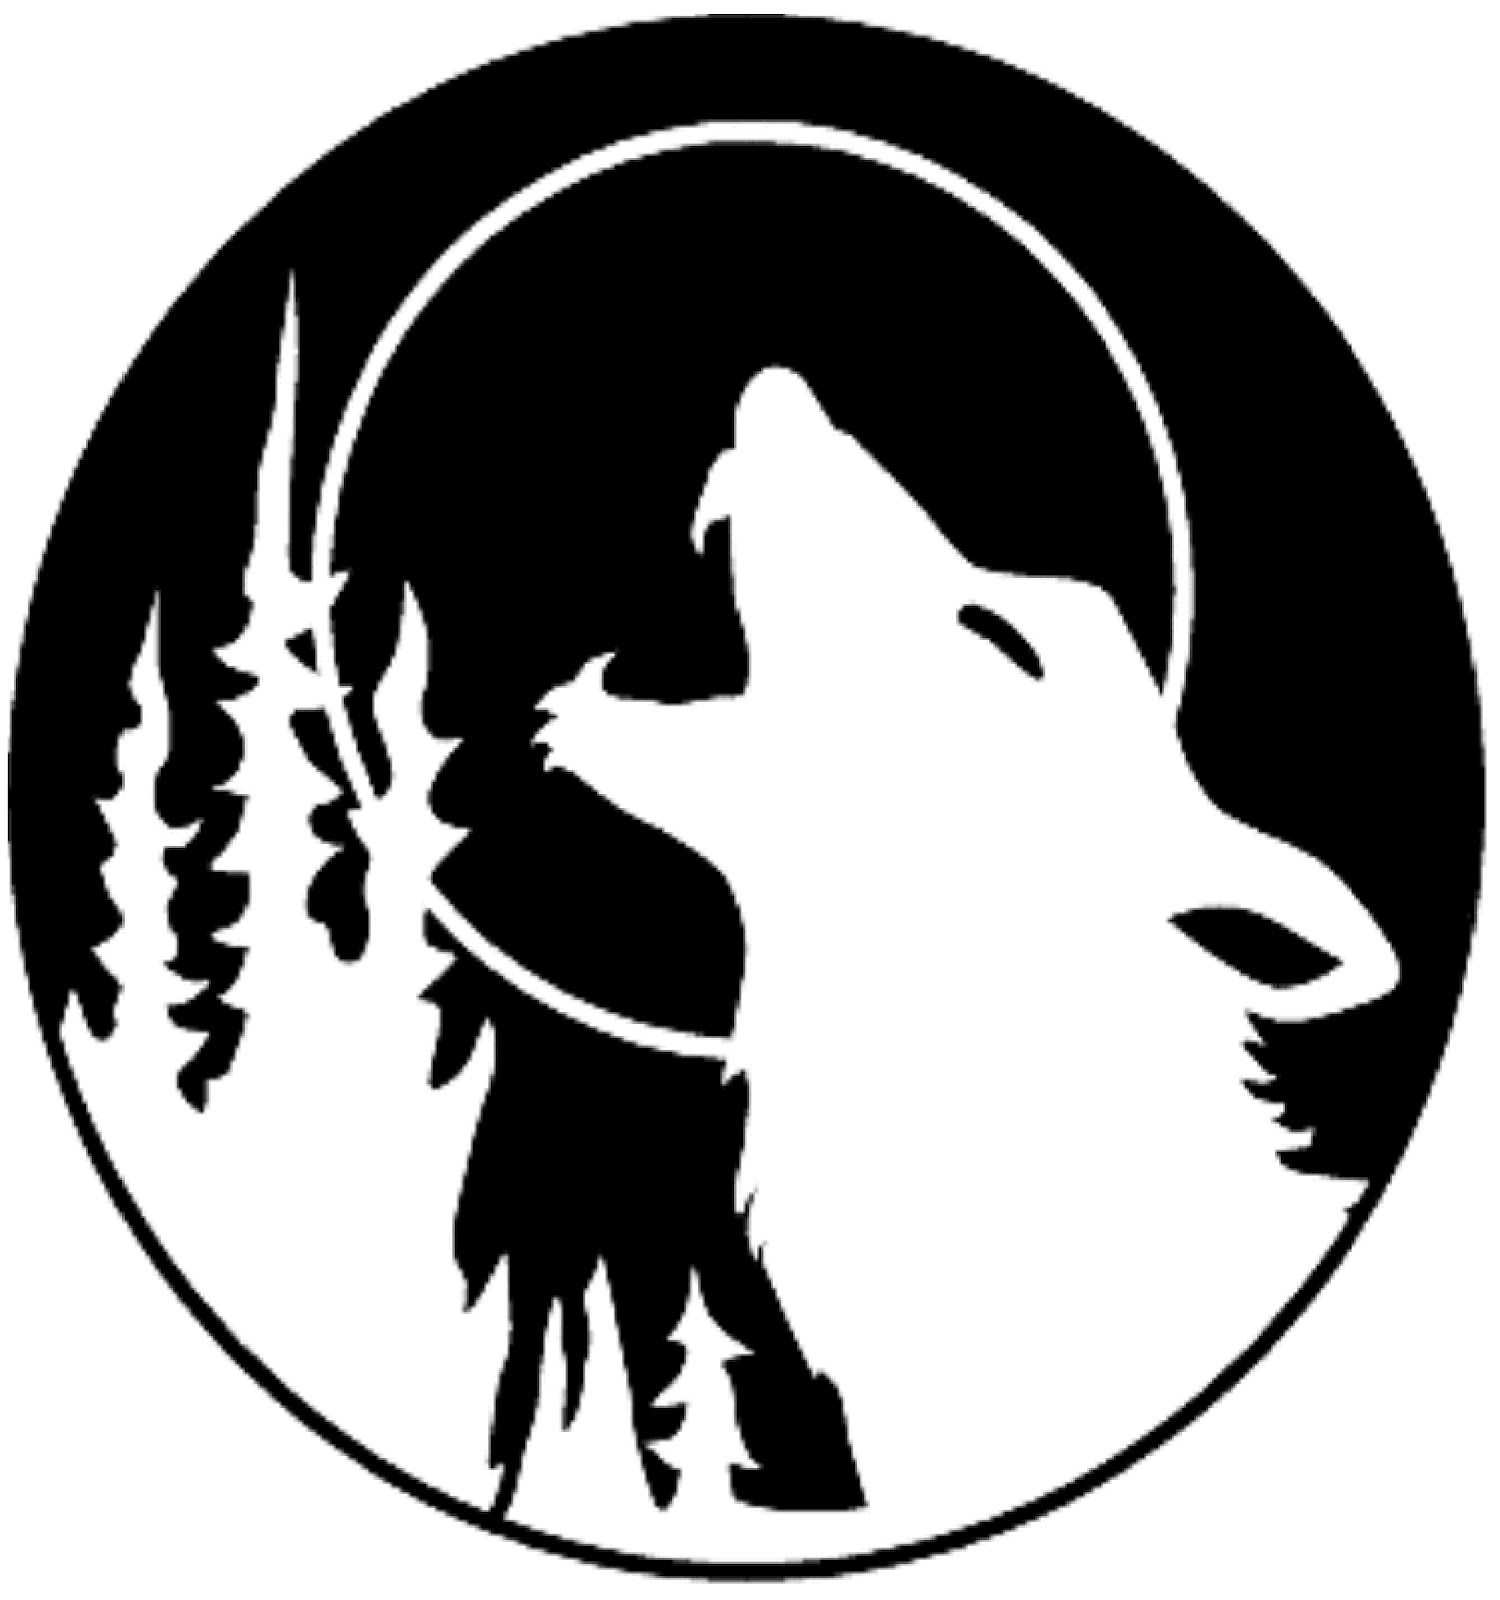 Howl clipart #2, Download drawings